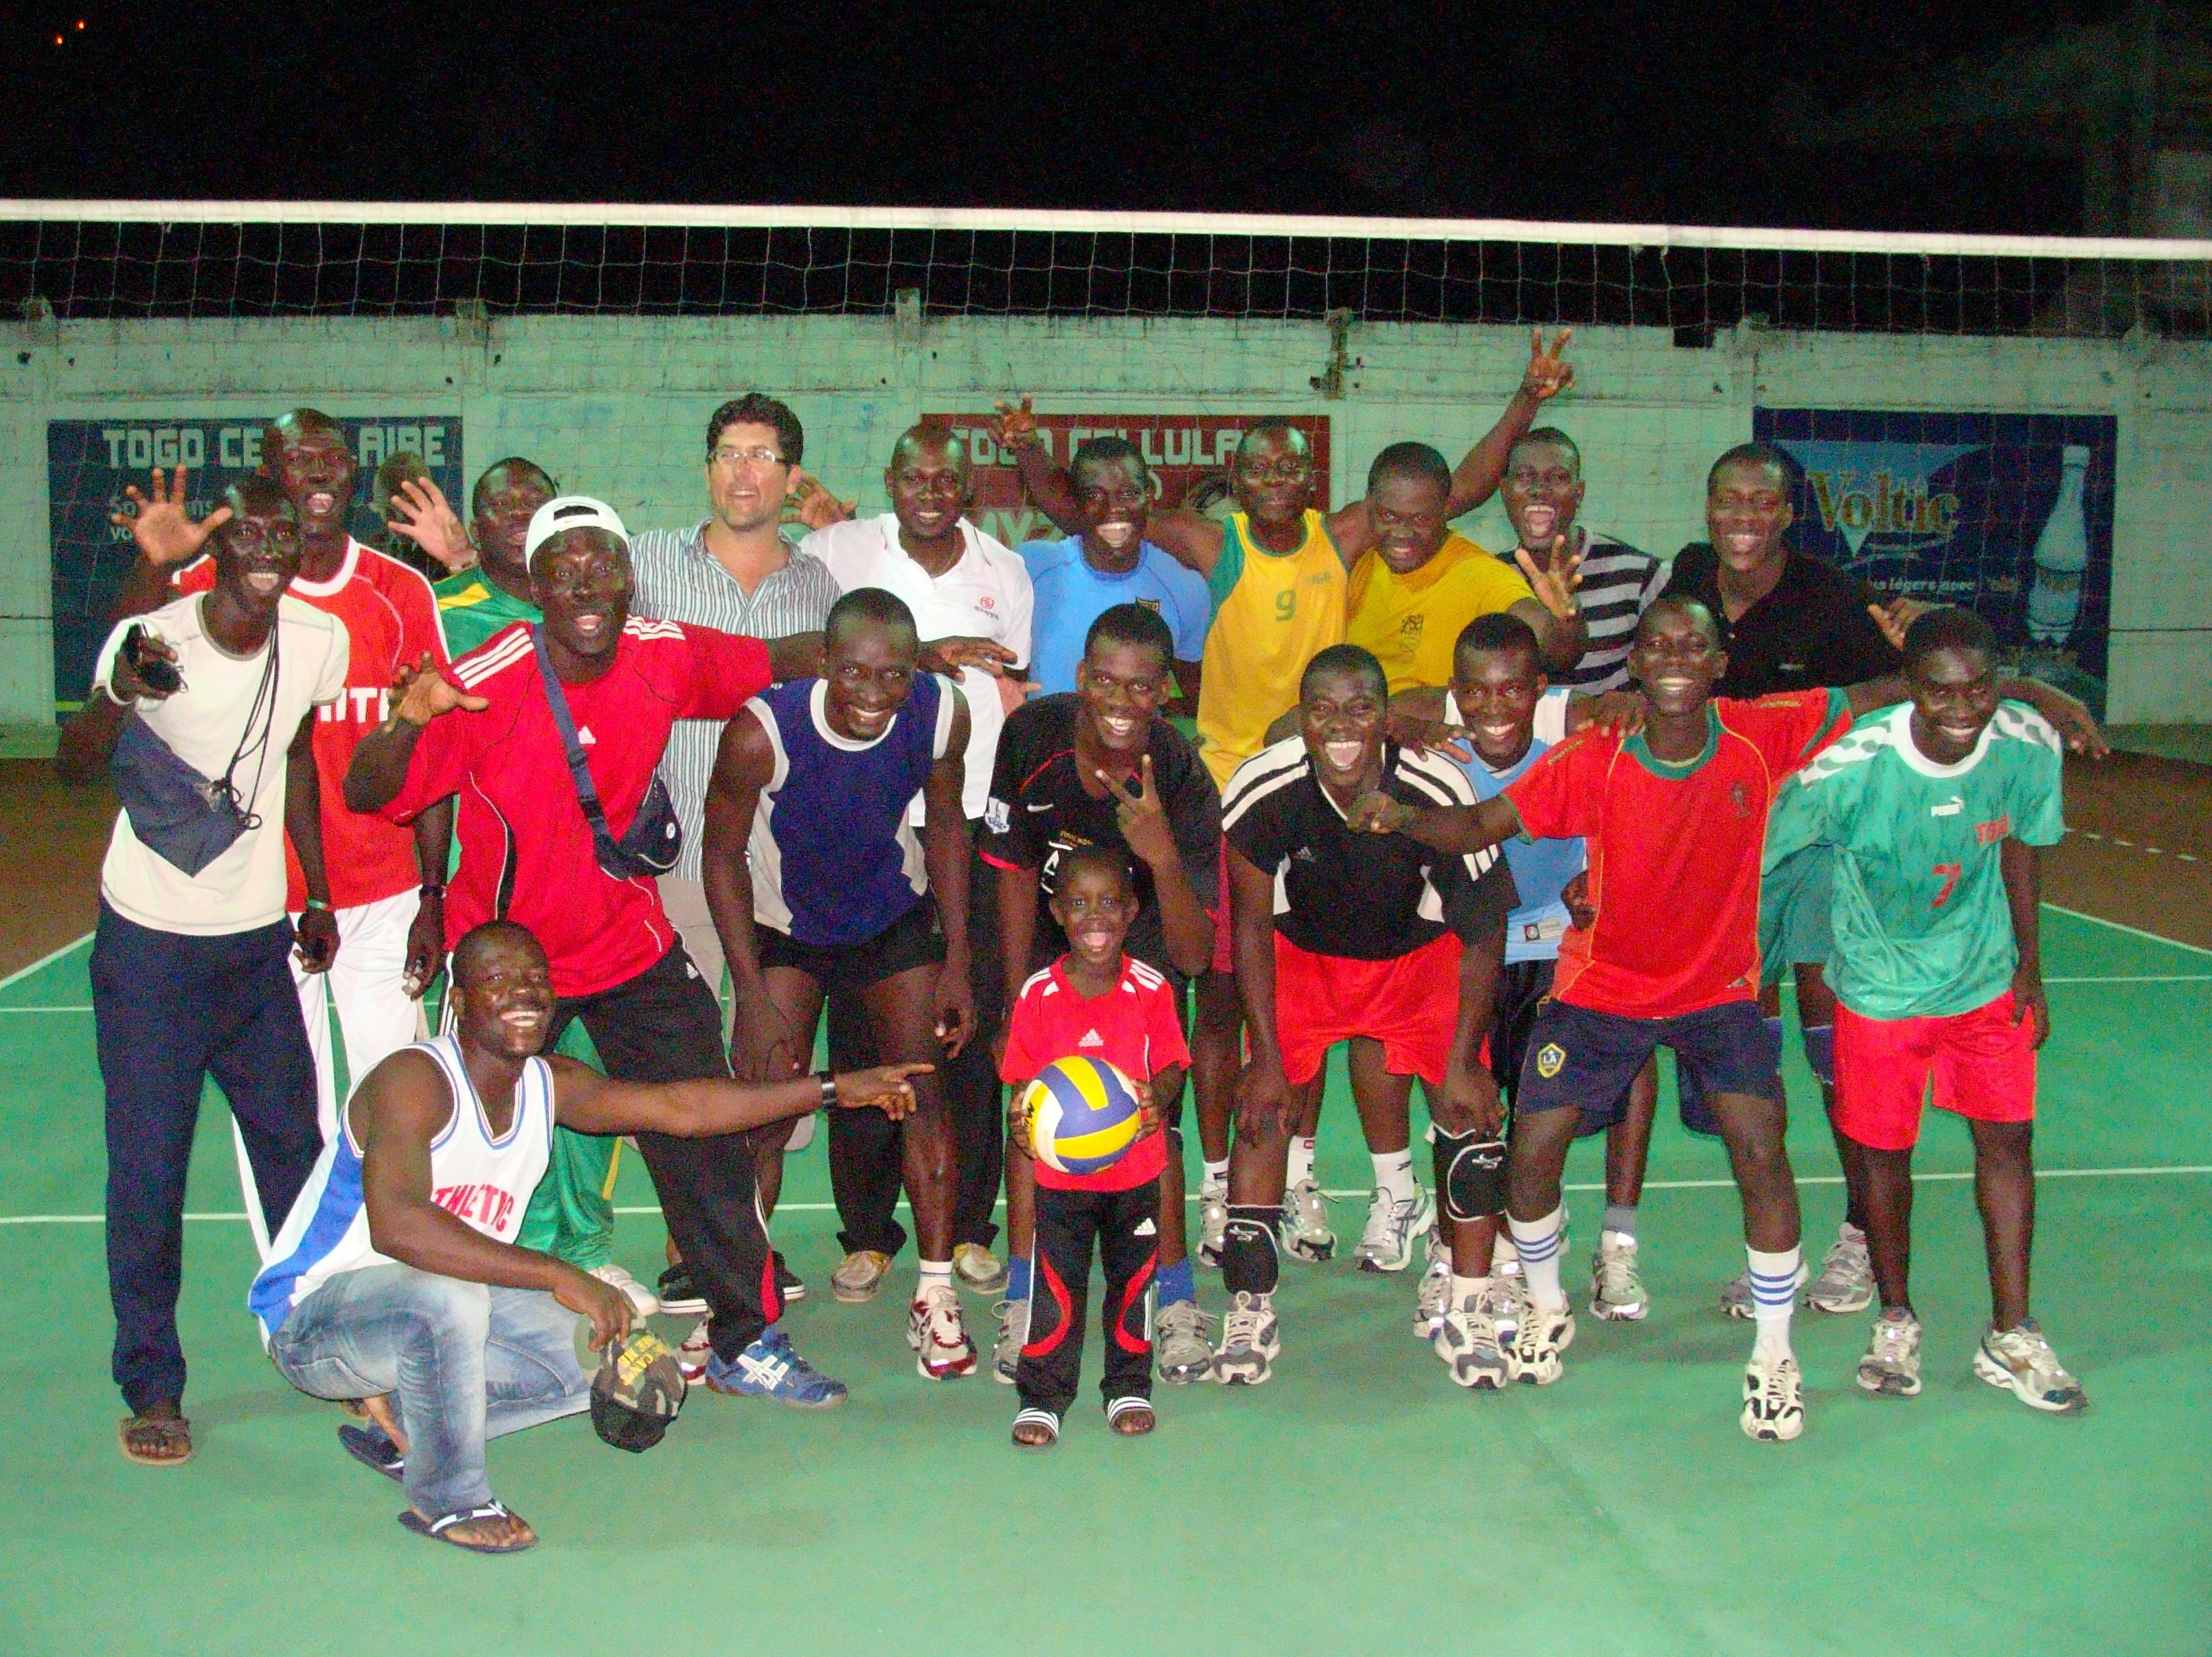 Drago with his group at the Volleyball Cooperation Program in Togo in 2011 Photocredit: Drago Peslac